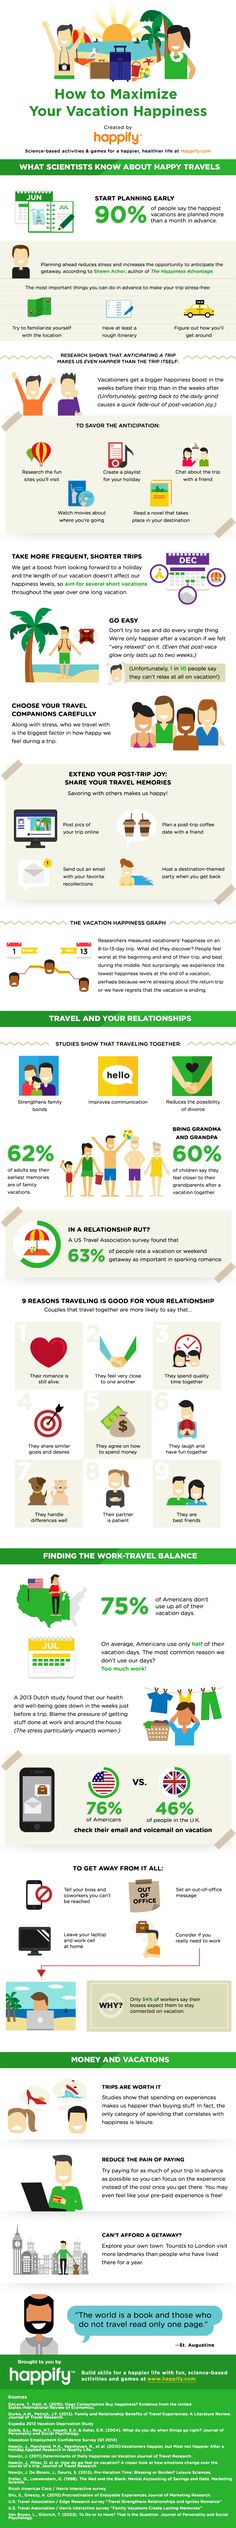 How To Maximize Vacation Happiness | YourTango